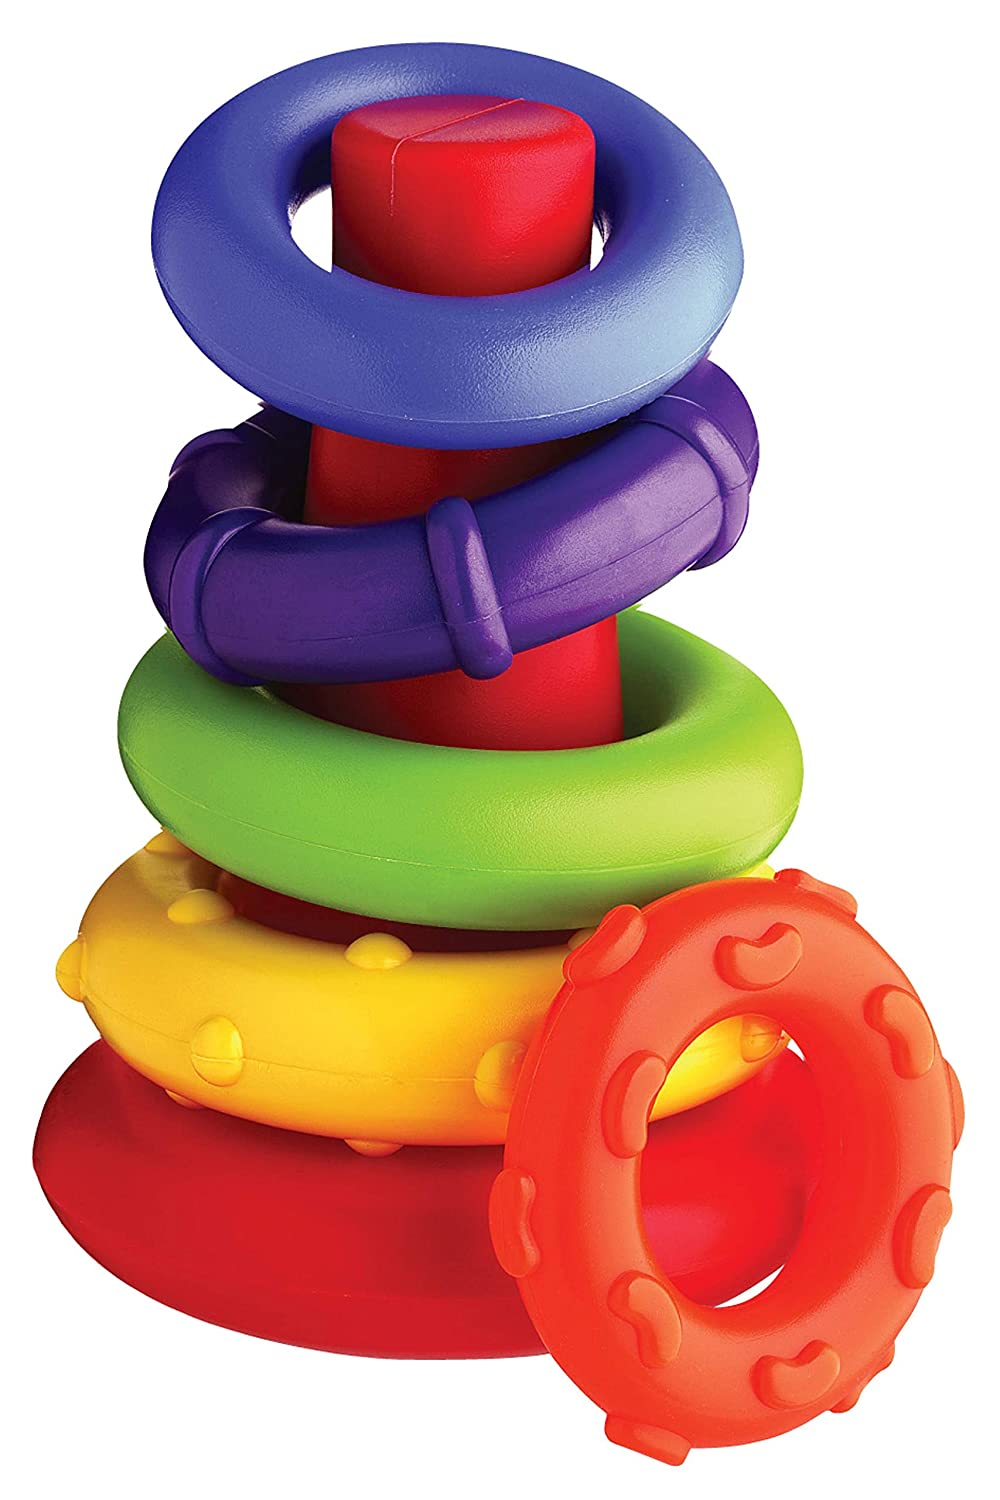 Playgro Baby Toy 4011455107 Sort & Stack Tower for Baby Infant Toddler Children, Multicolor